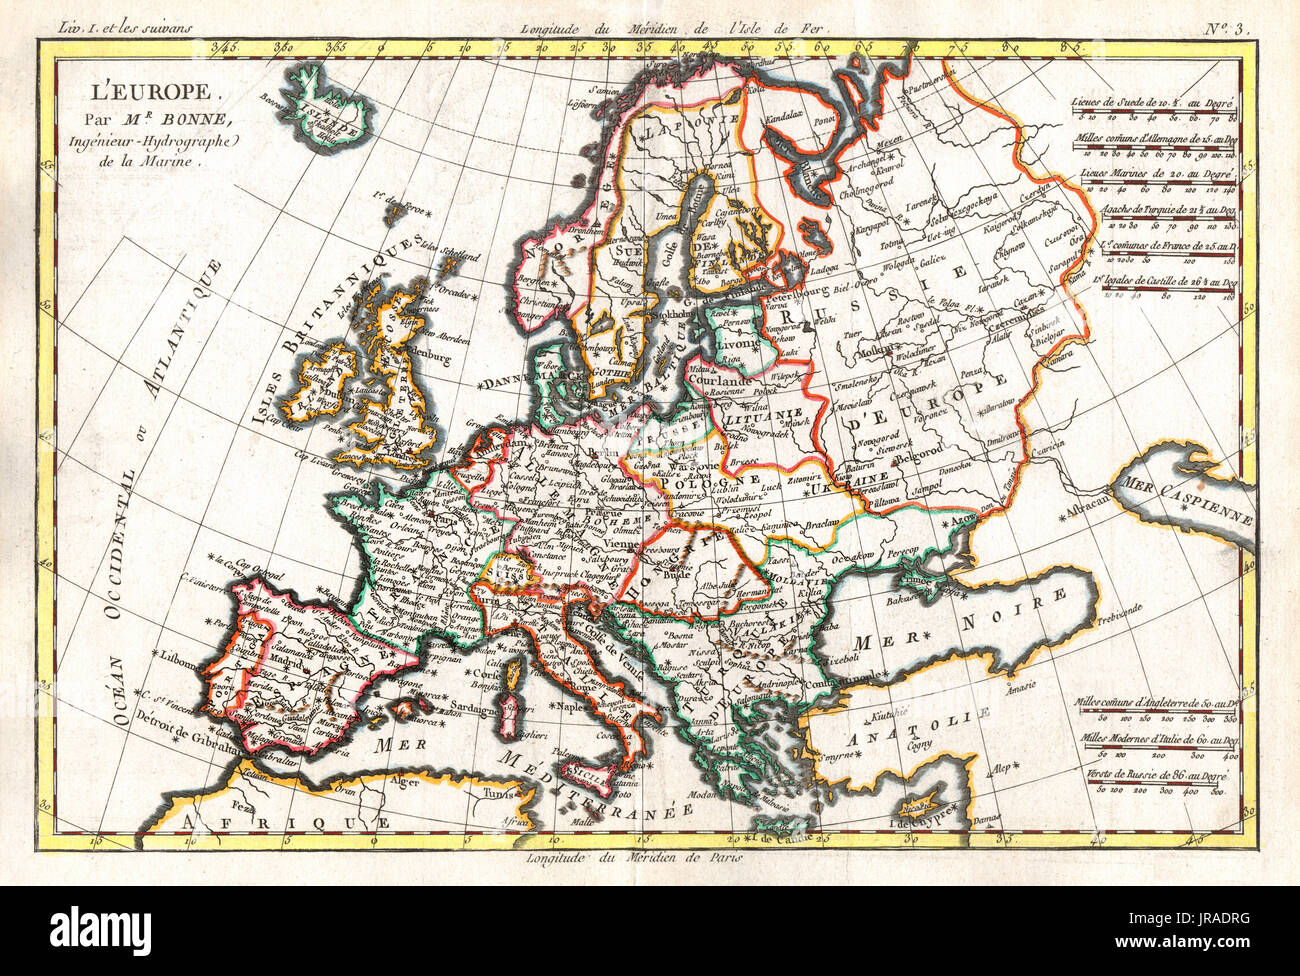 Map Of Europe 1780.18th Century Europe Map Stock Photos 18th Century Europe Map Stock